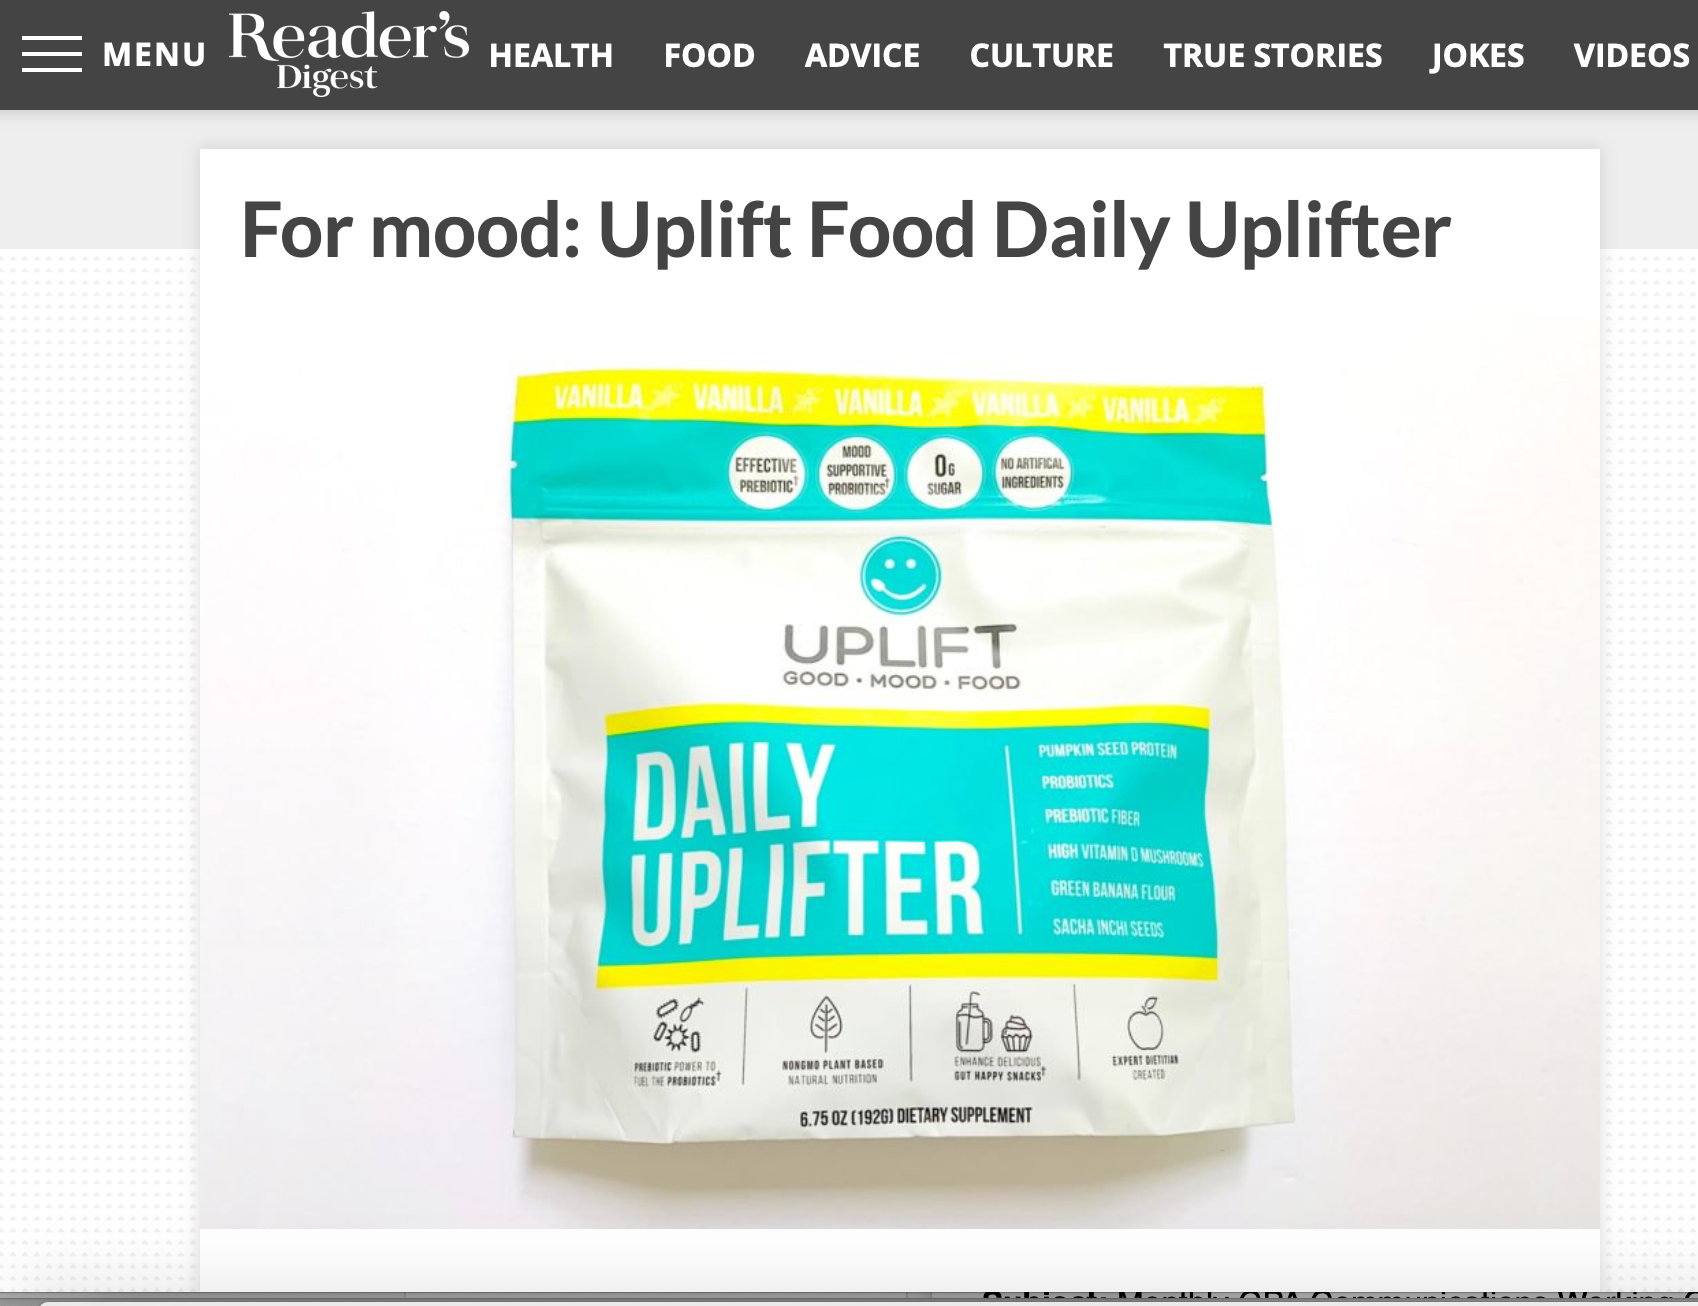 Uplift Food Daily Uplifter Nutritionist Trusted Probiotic Brand Readers Digest Prebiotic Fiber Supplement Resistant Starch Mood Probiotics